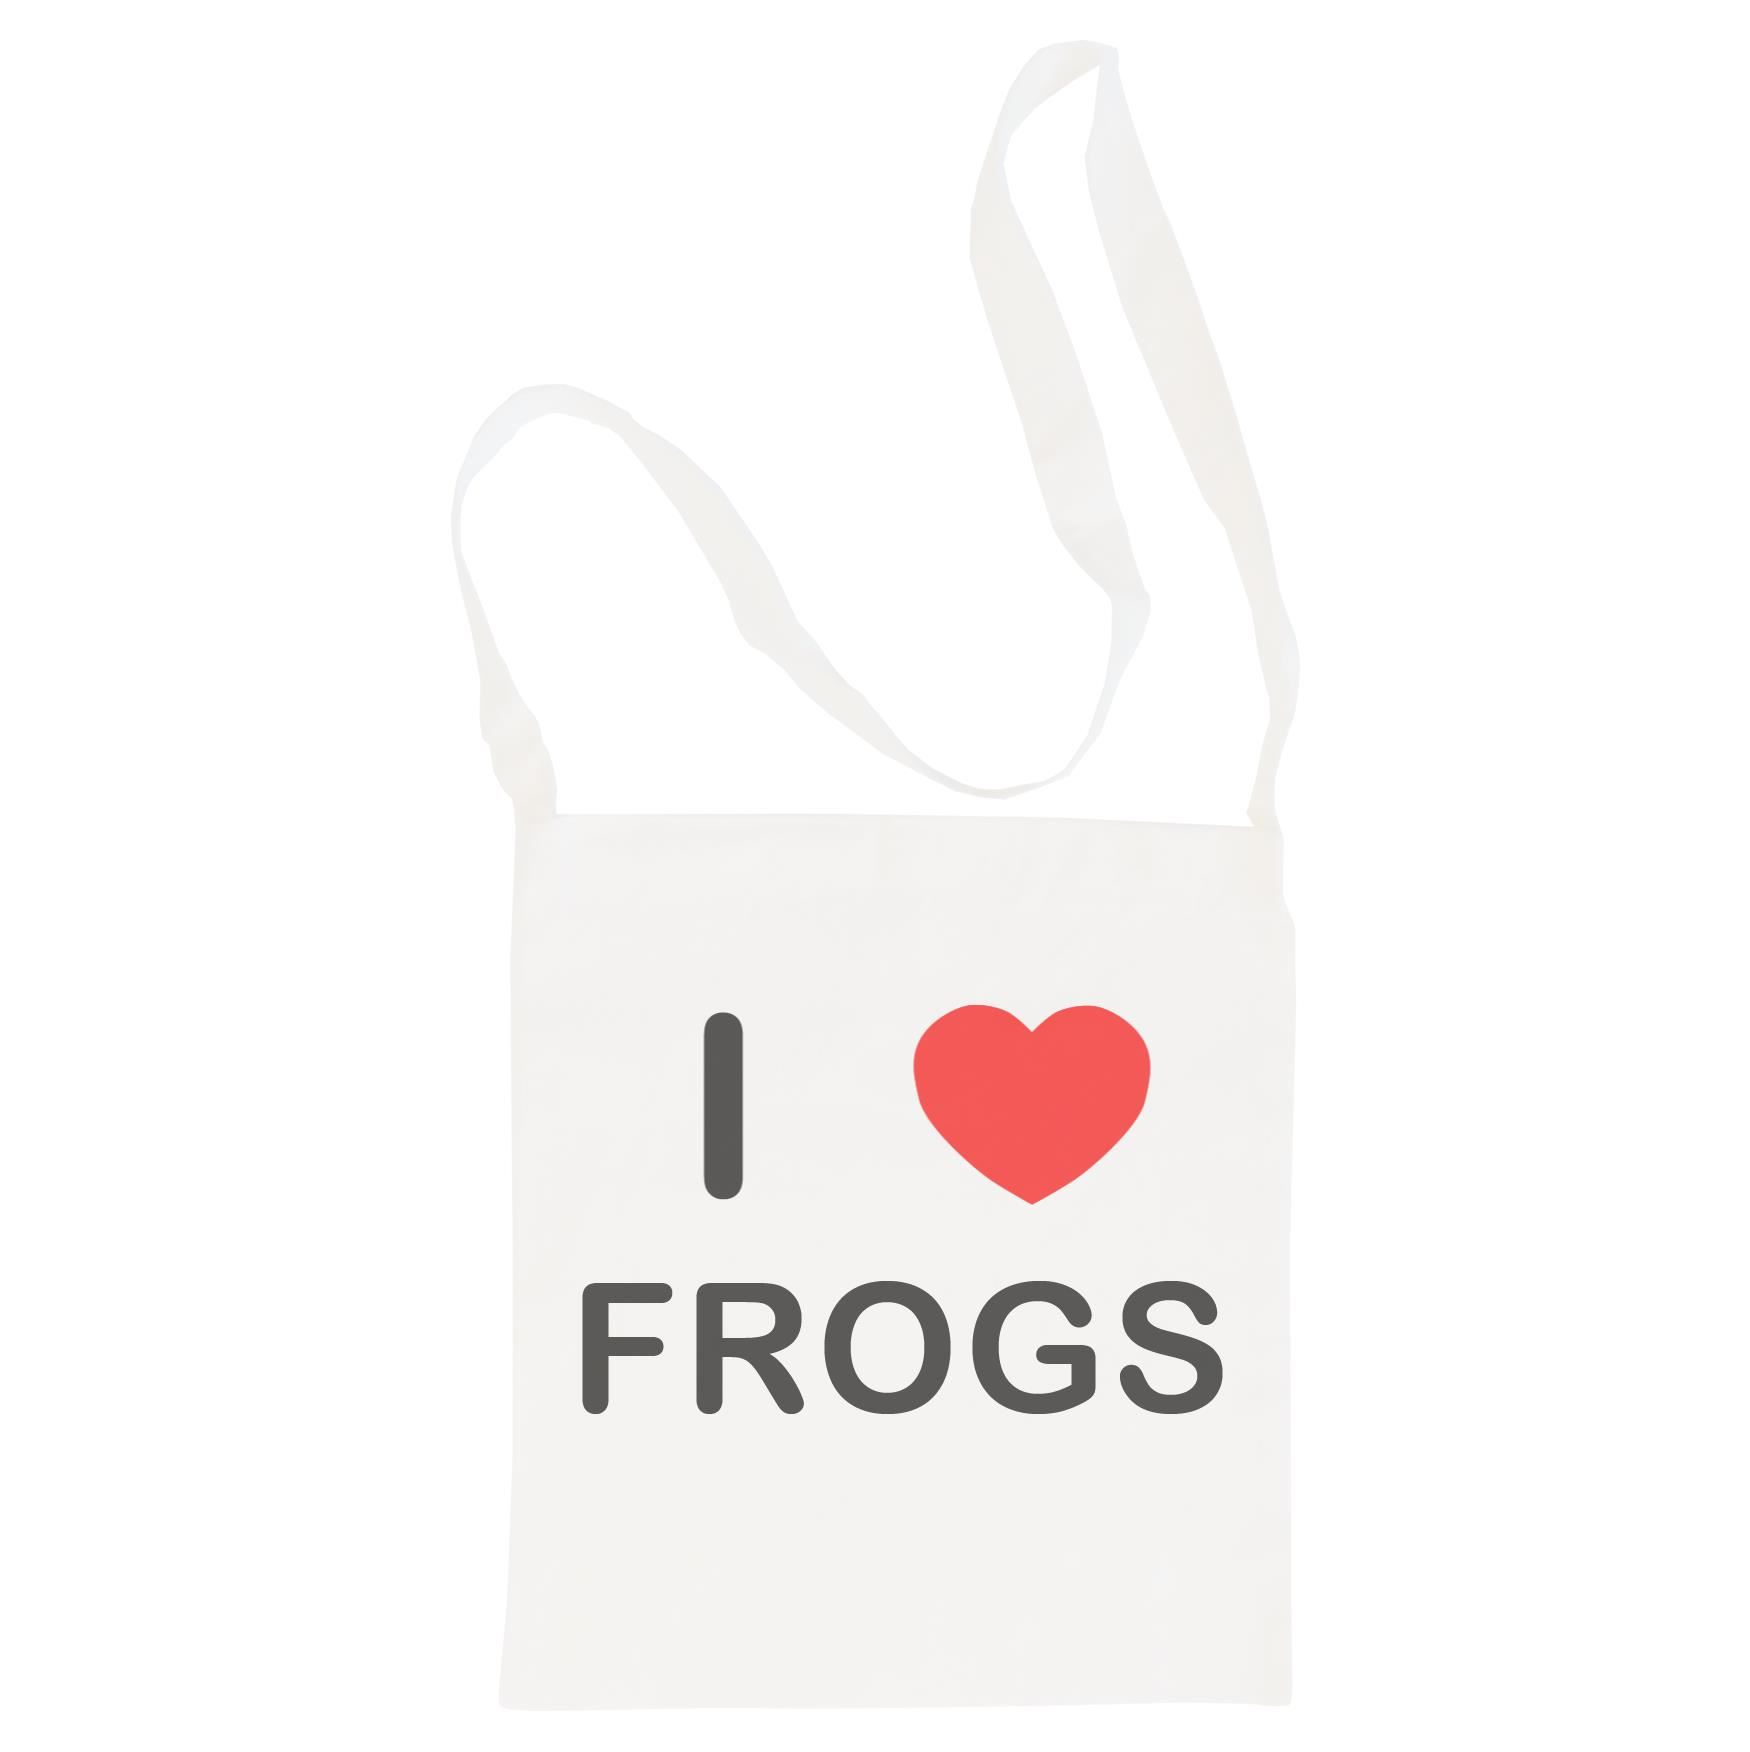 I Love Frogs - Cotton Bag | Size choice Tote, Shopper or Sling